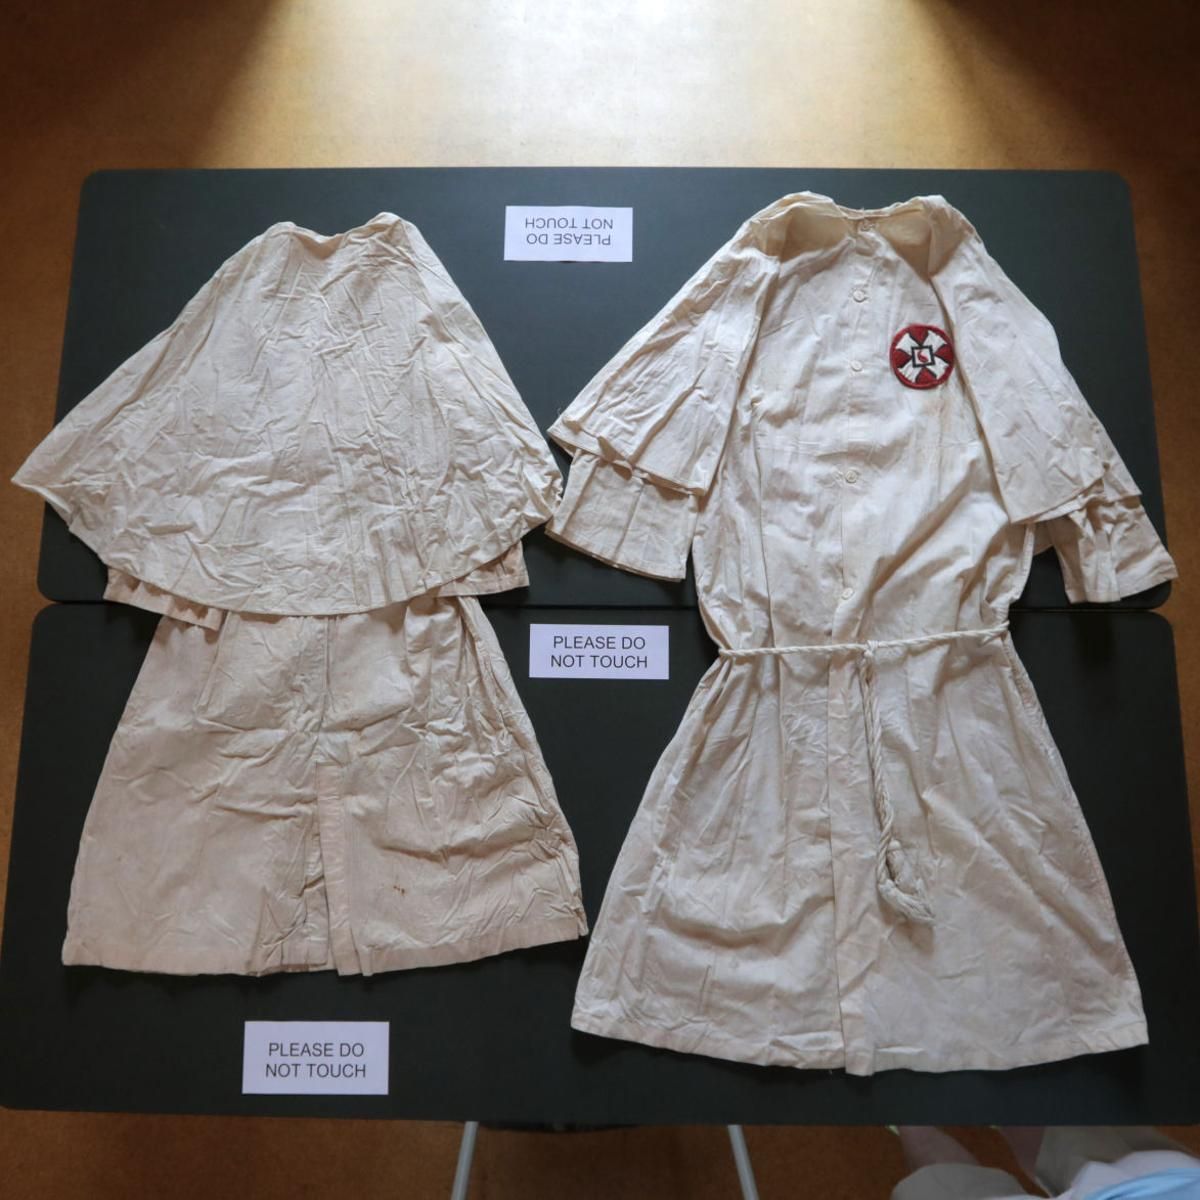 KKK robes unveiled at historical society, but owners kept hidden